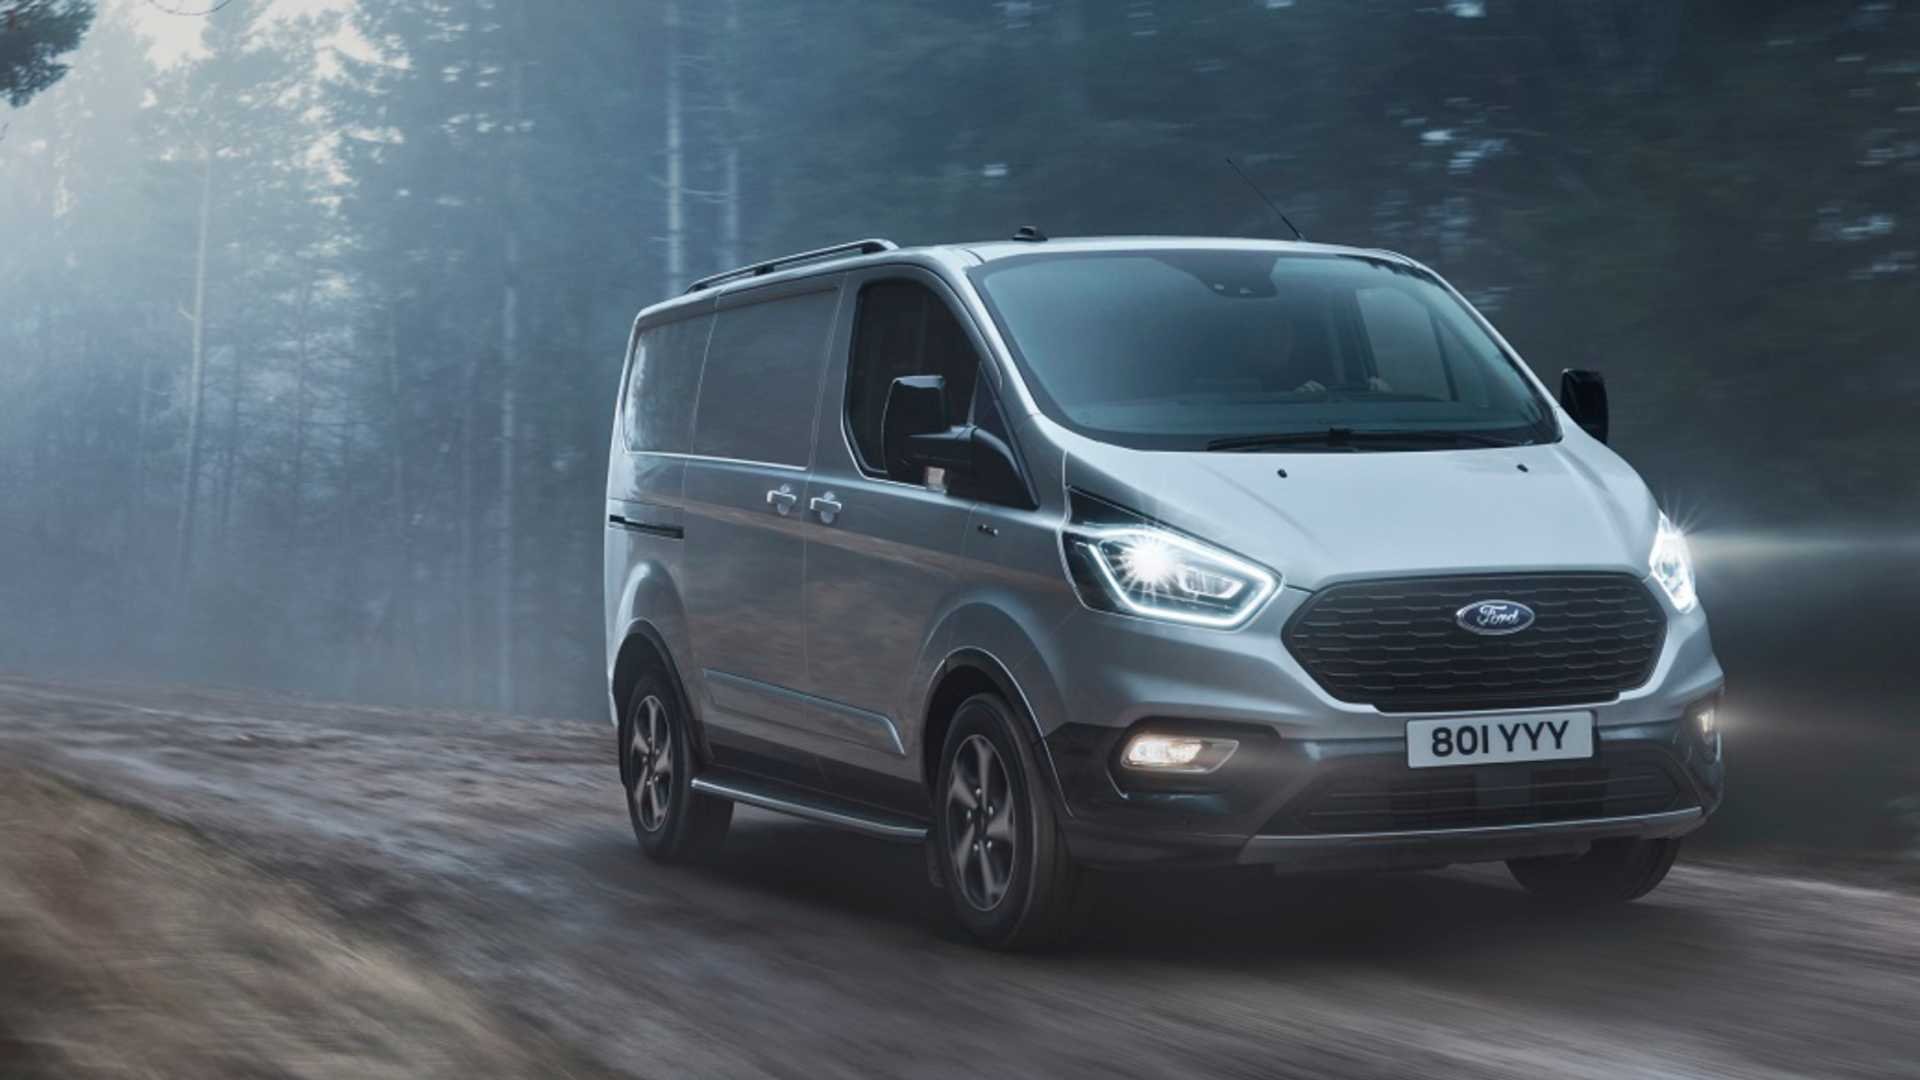 European Ford Transit S New Trail Model Has Raptor Inspired Grille